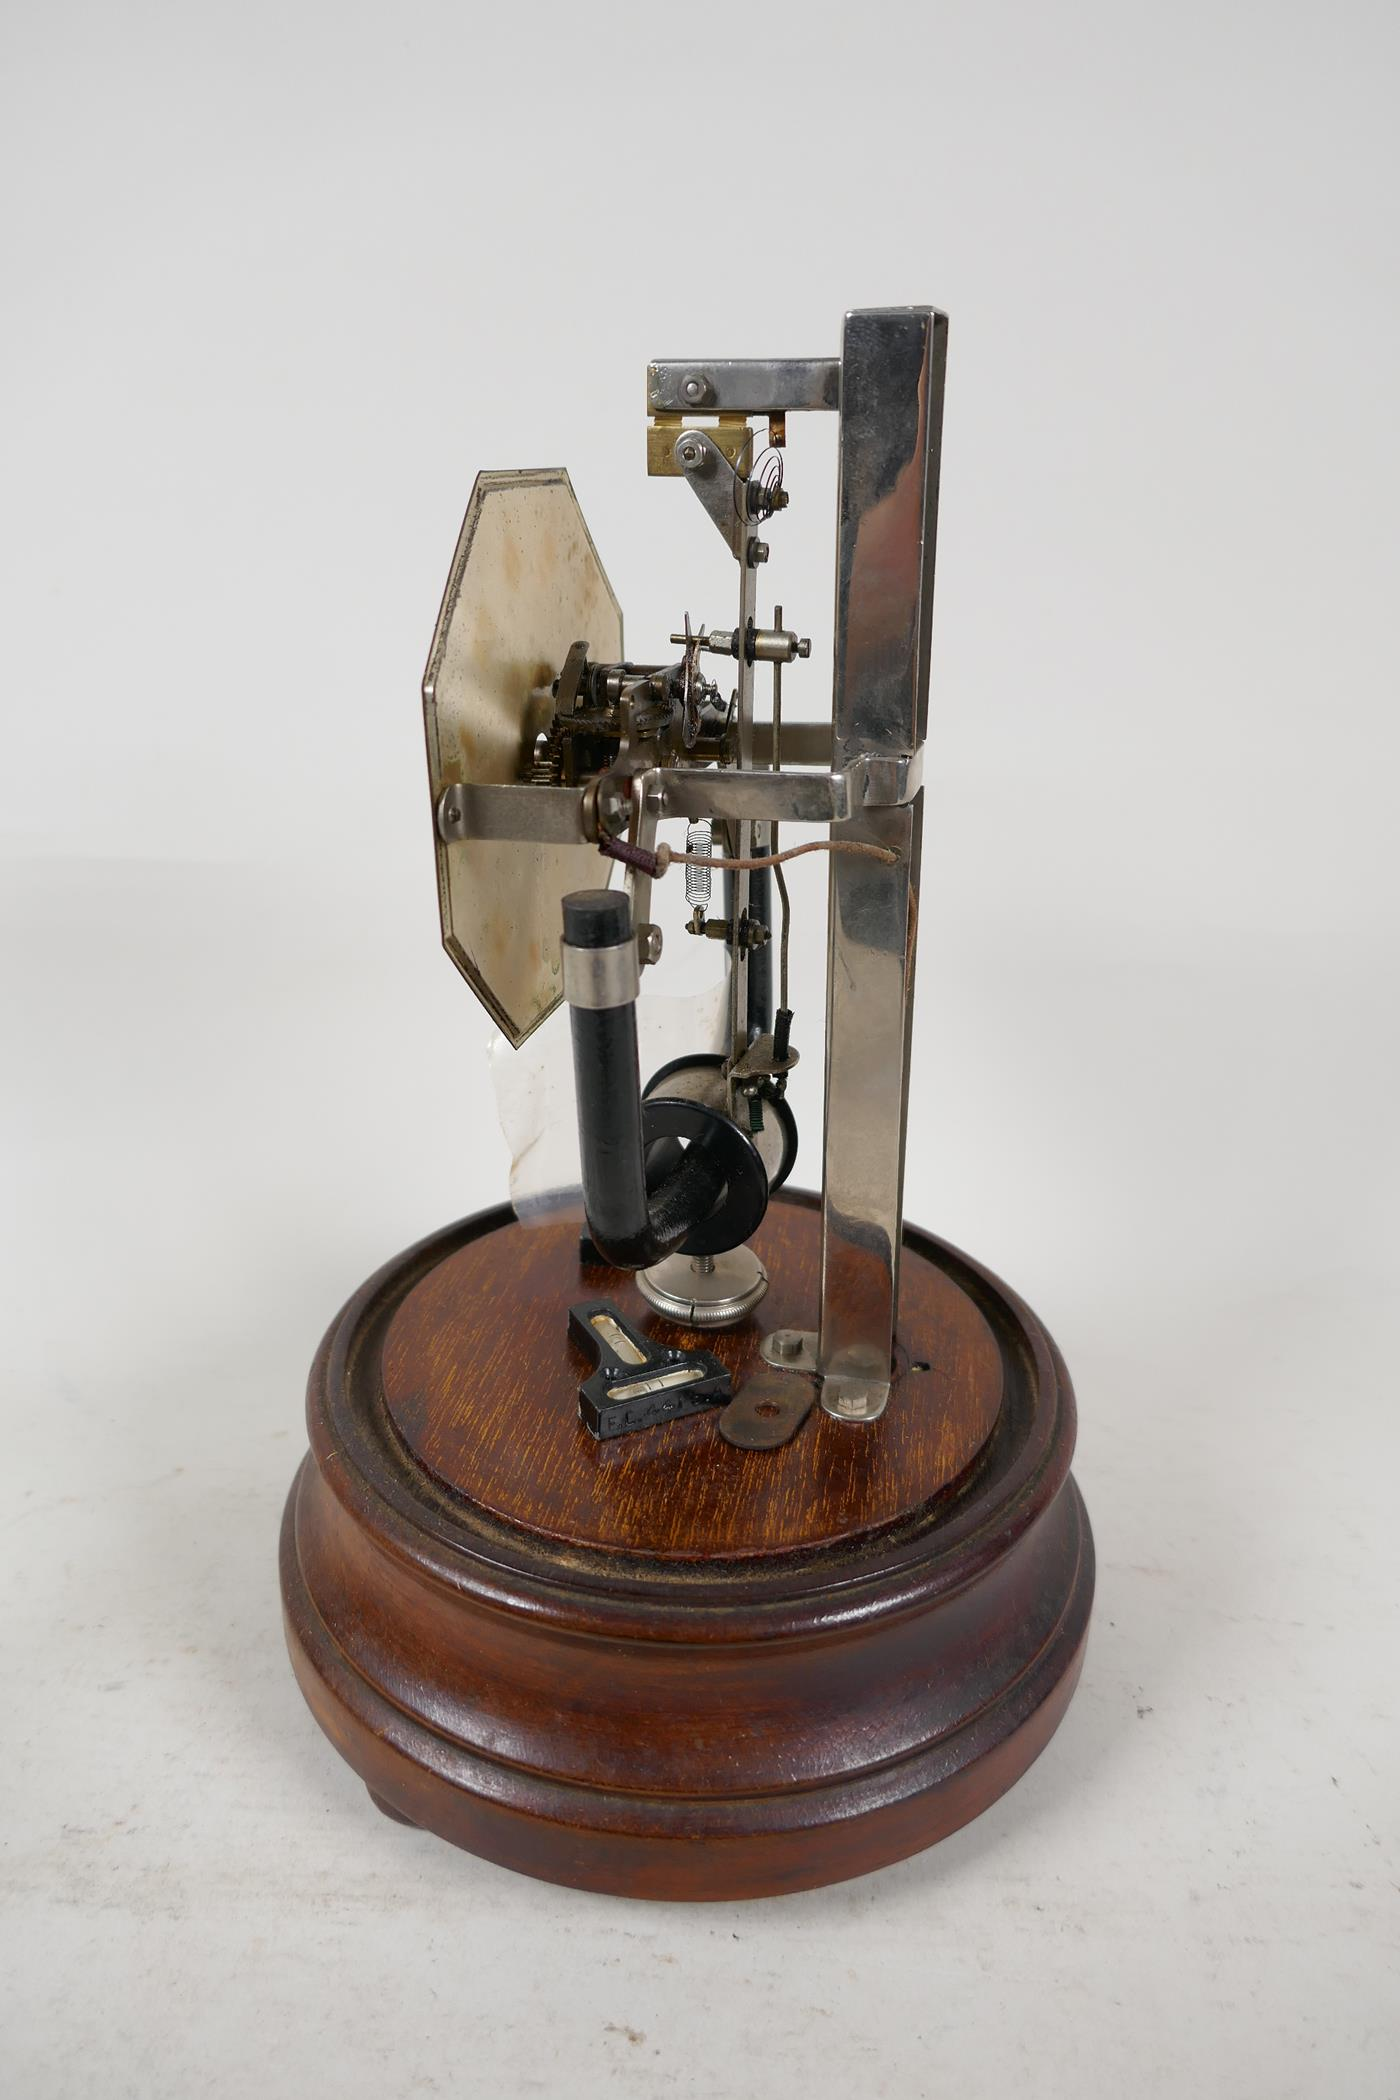 """A Bulle electric mantel clock under glass dome, 10½"""" high - Image 2 of 4"""